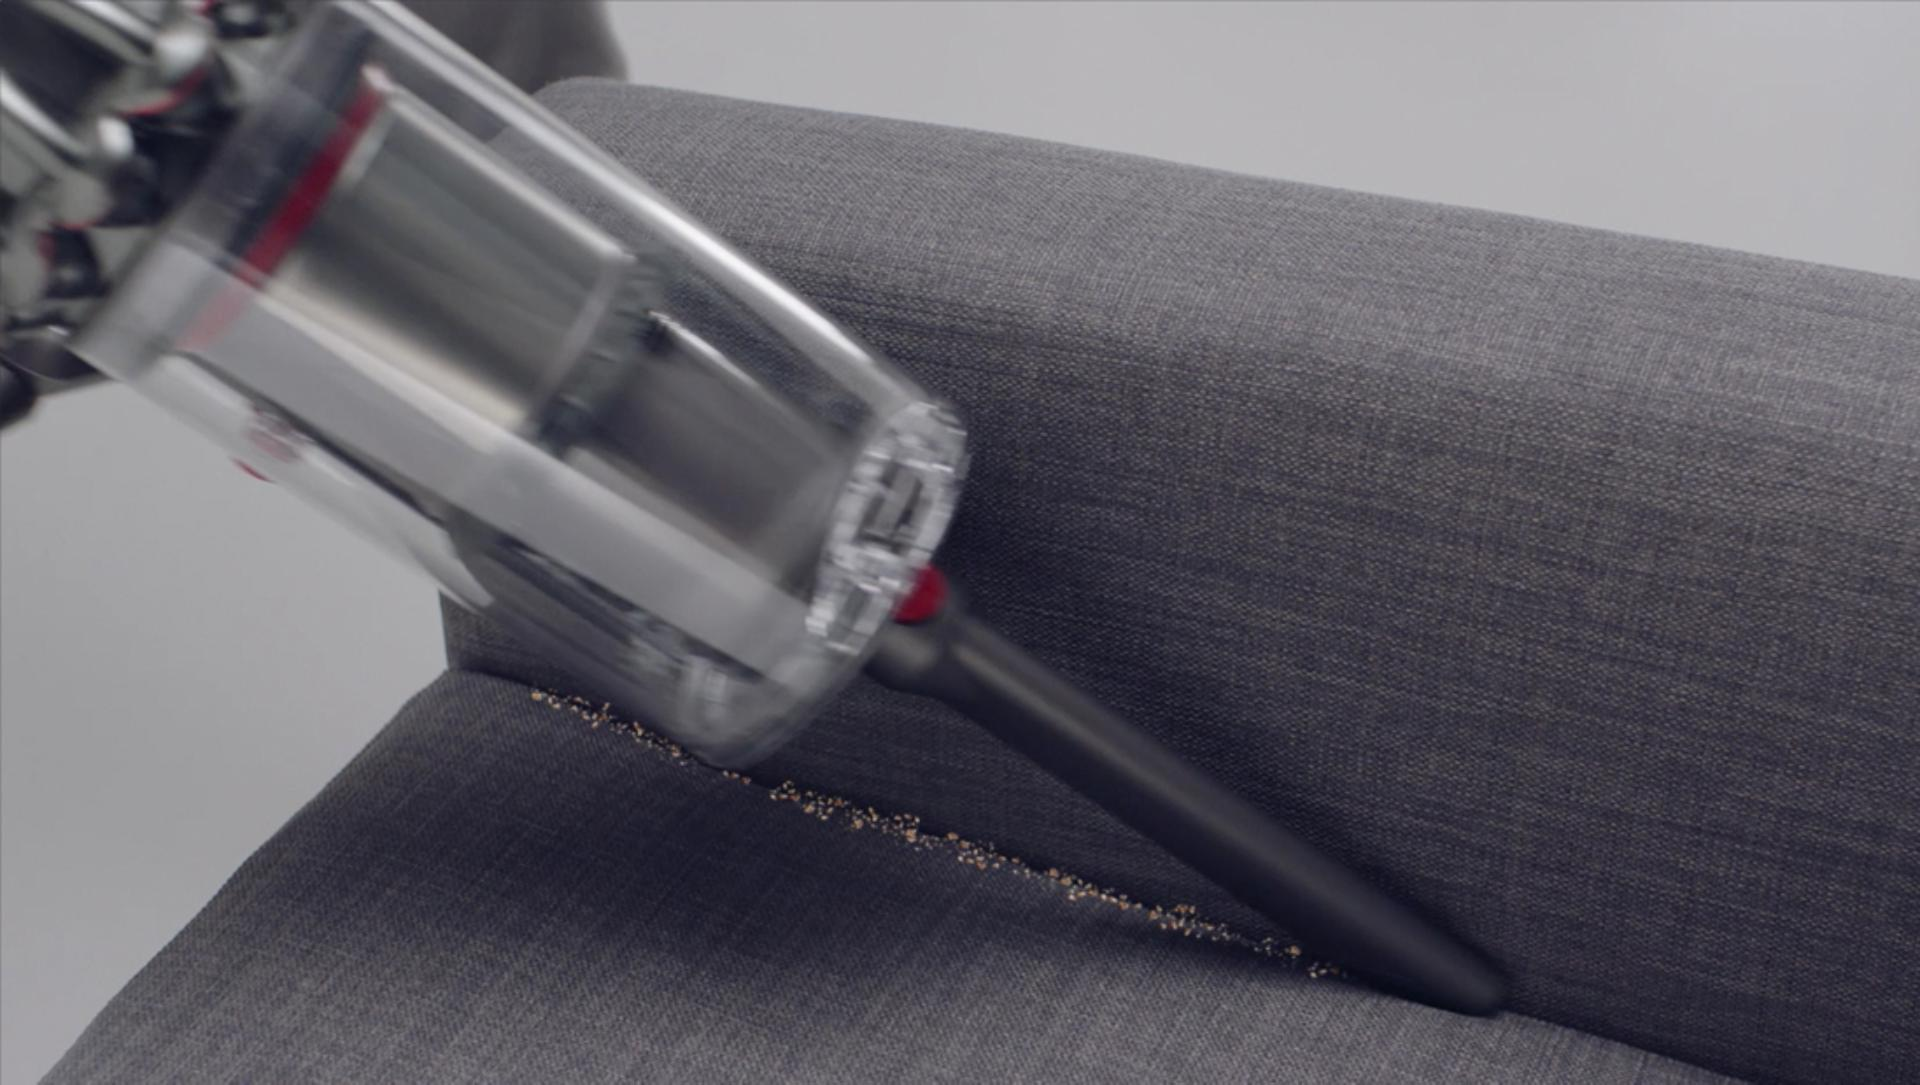 Crevice tool cleaning crevices of a sofa